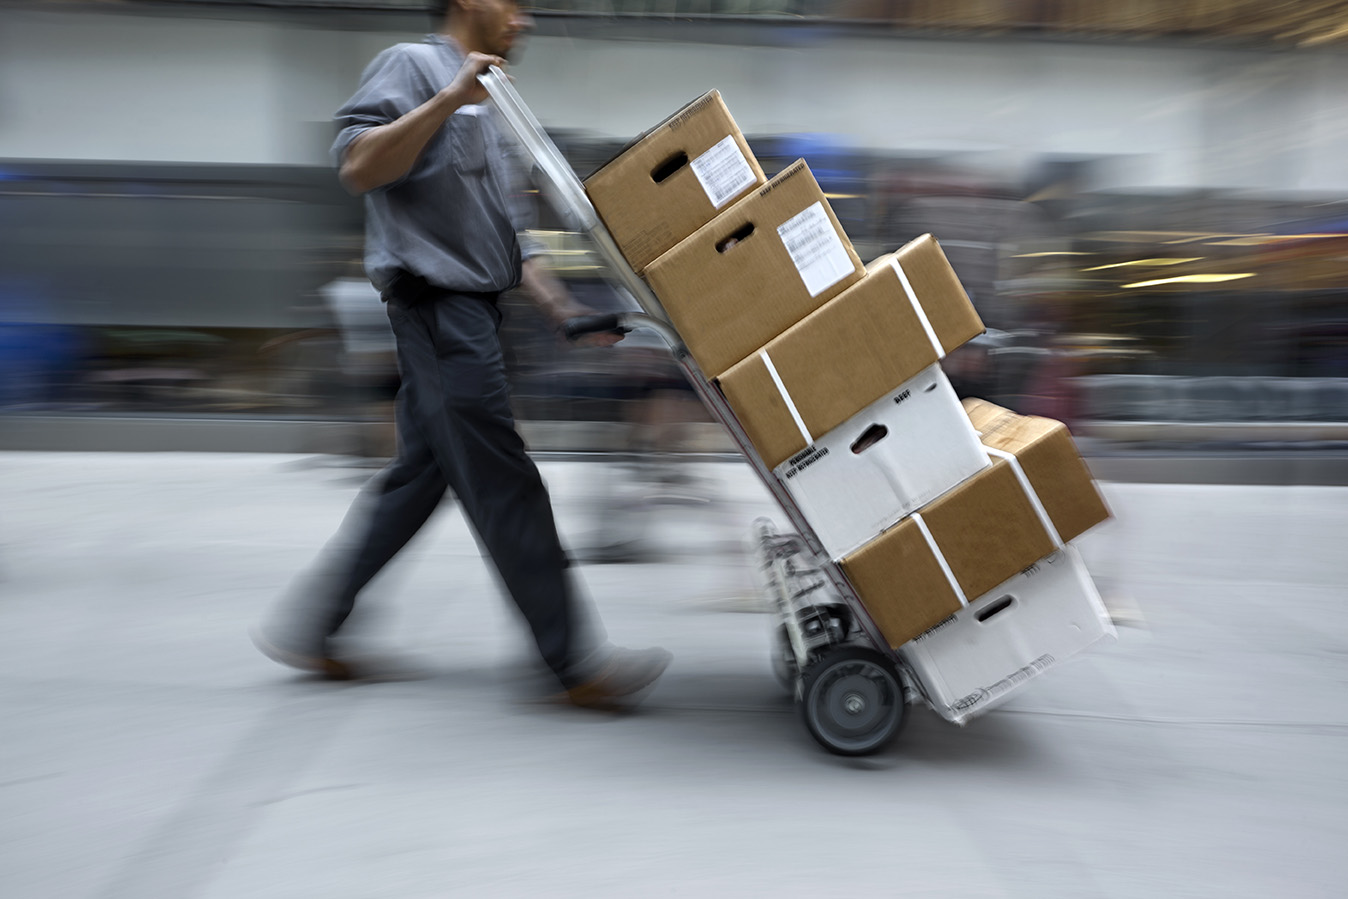 Delivery man with hand cart delivering boxes